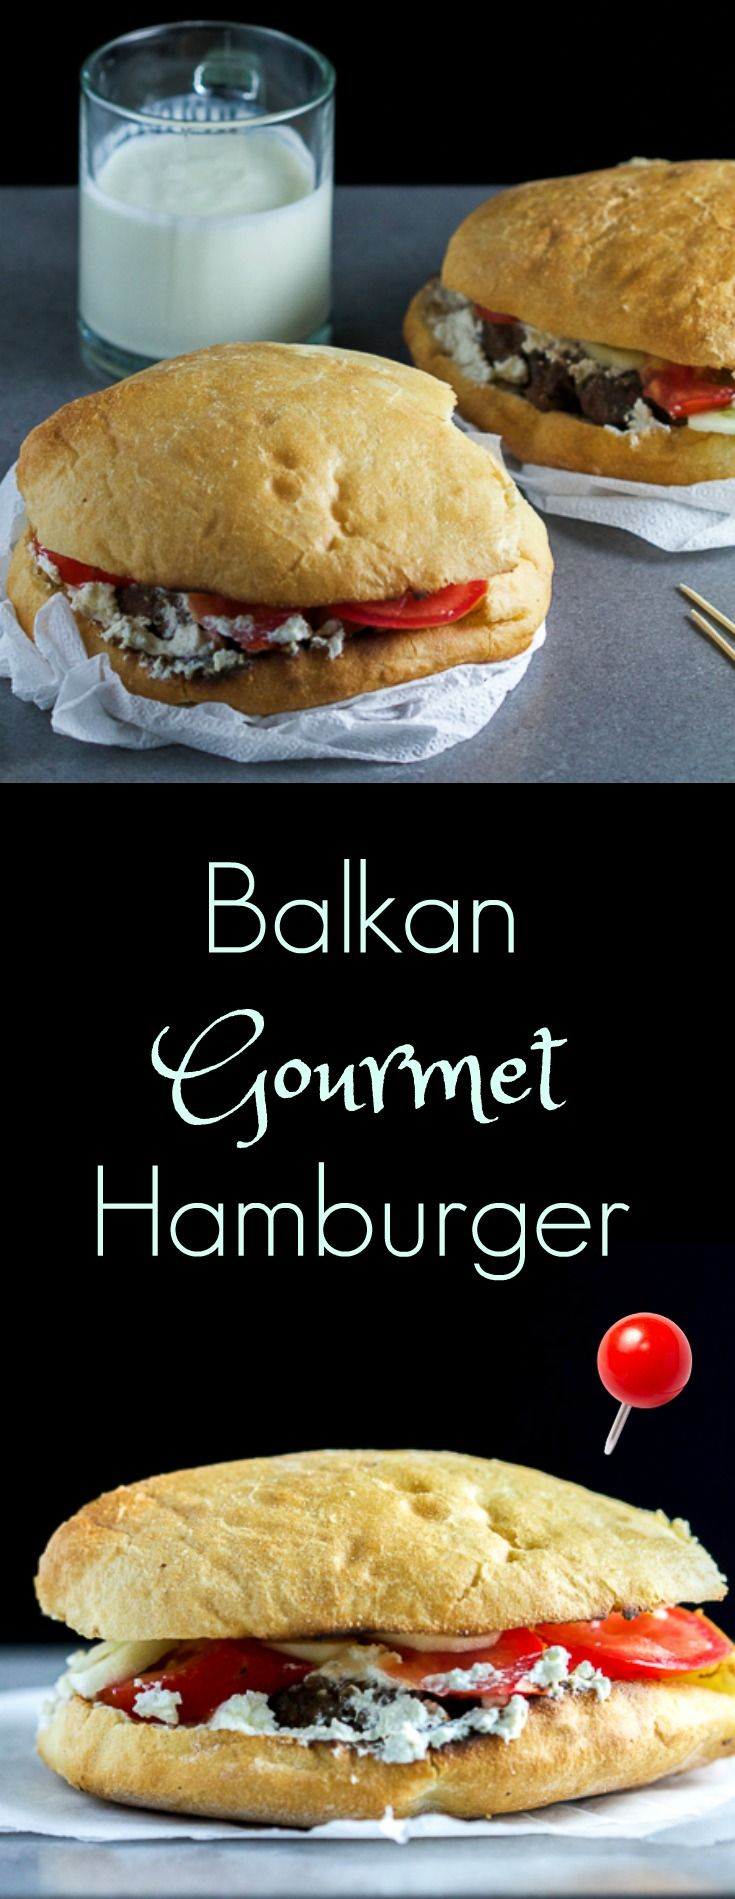 gourmet burgers recipe | hamburgers recipe | burger patties from scratch recipe | balkan burger pljeskavica recipe | hamburger | quick burger | delicious burger | ground beef burger | kako se pravi pljeskavica | kako da napravim pljeskavicu | recept za pljeskavicu | lagane pljeskavice |